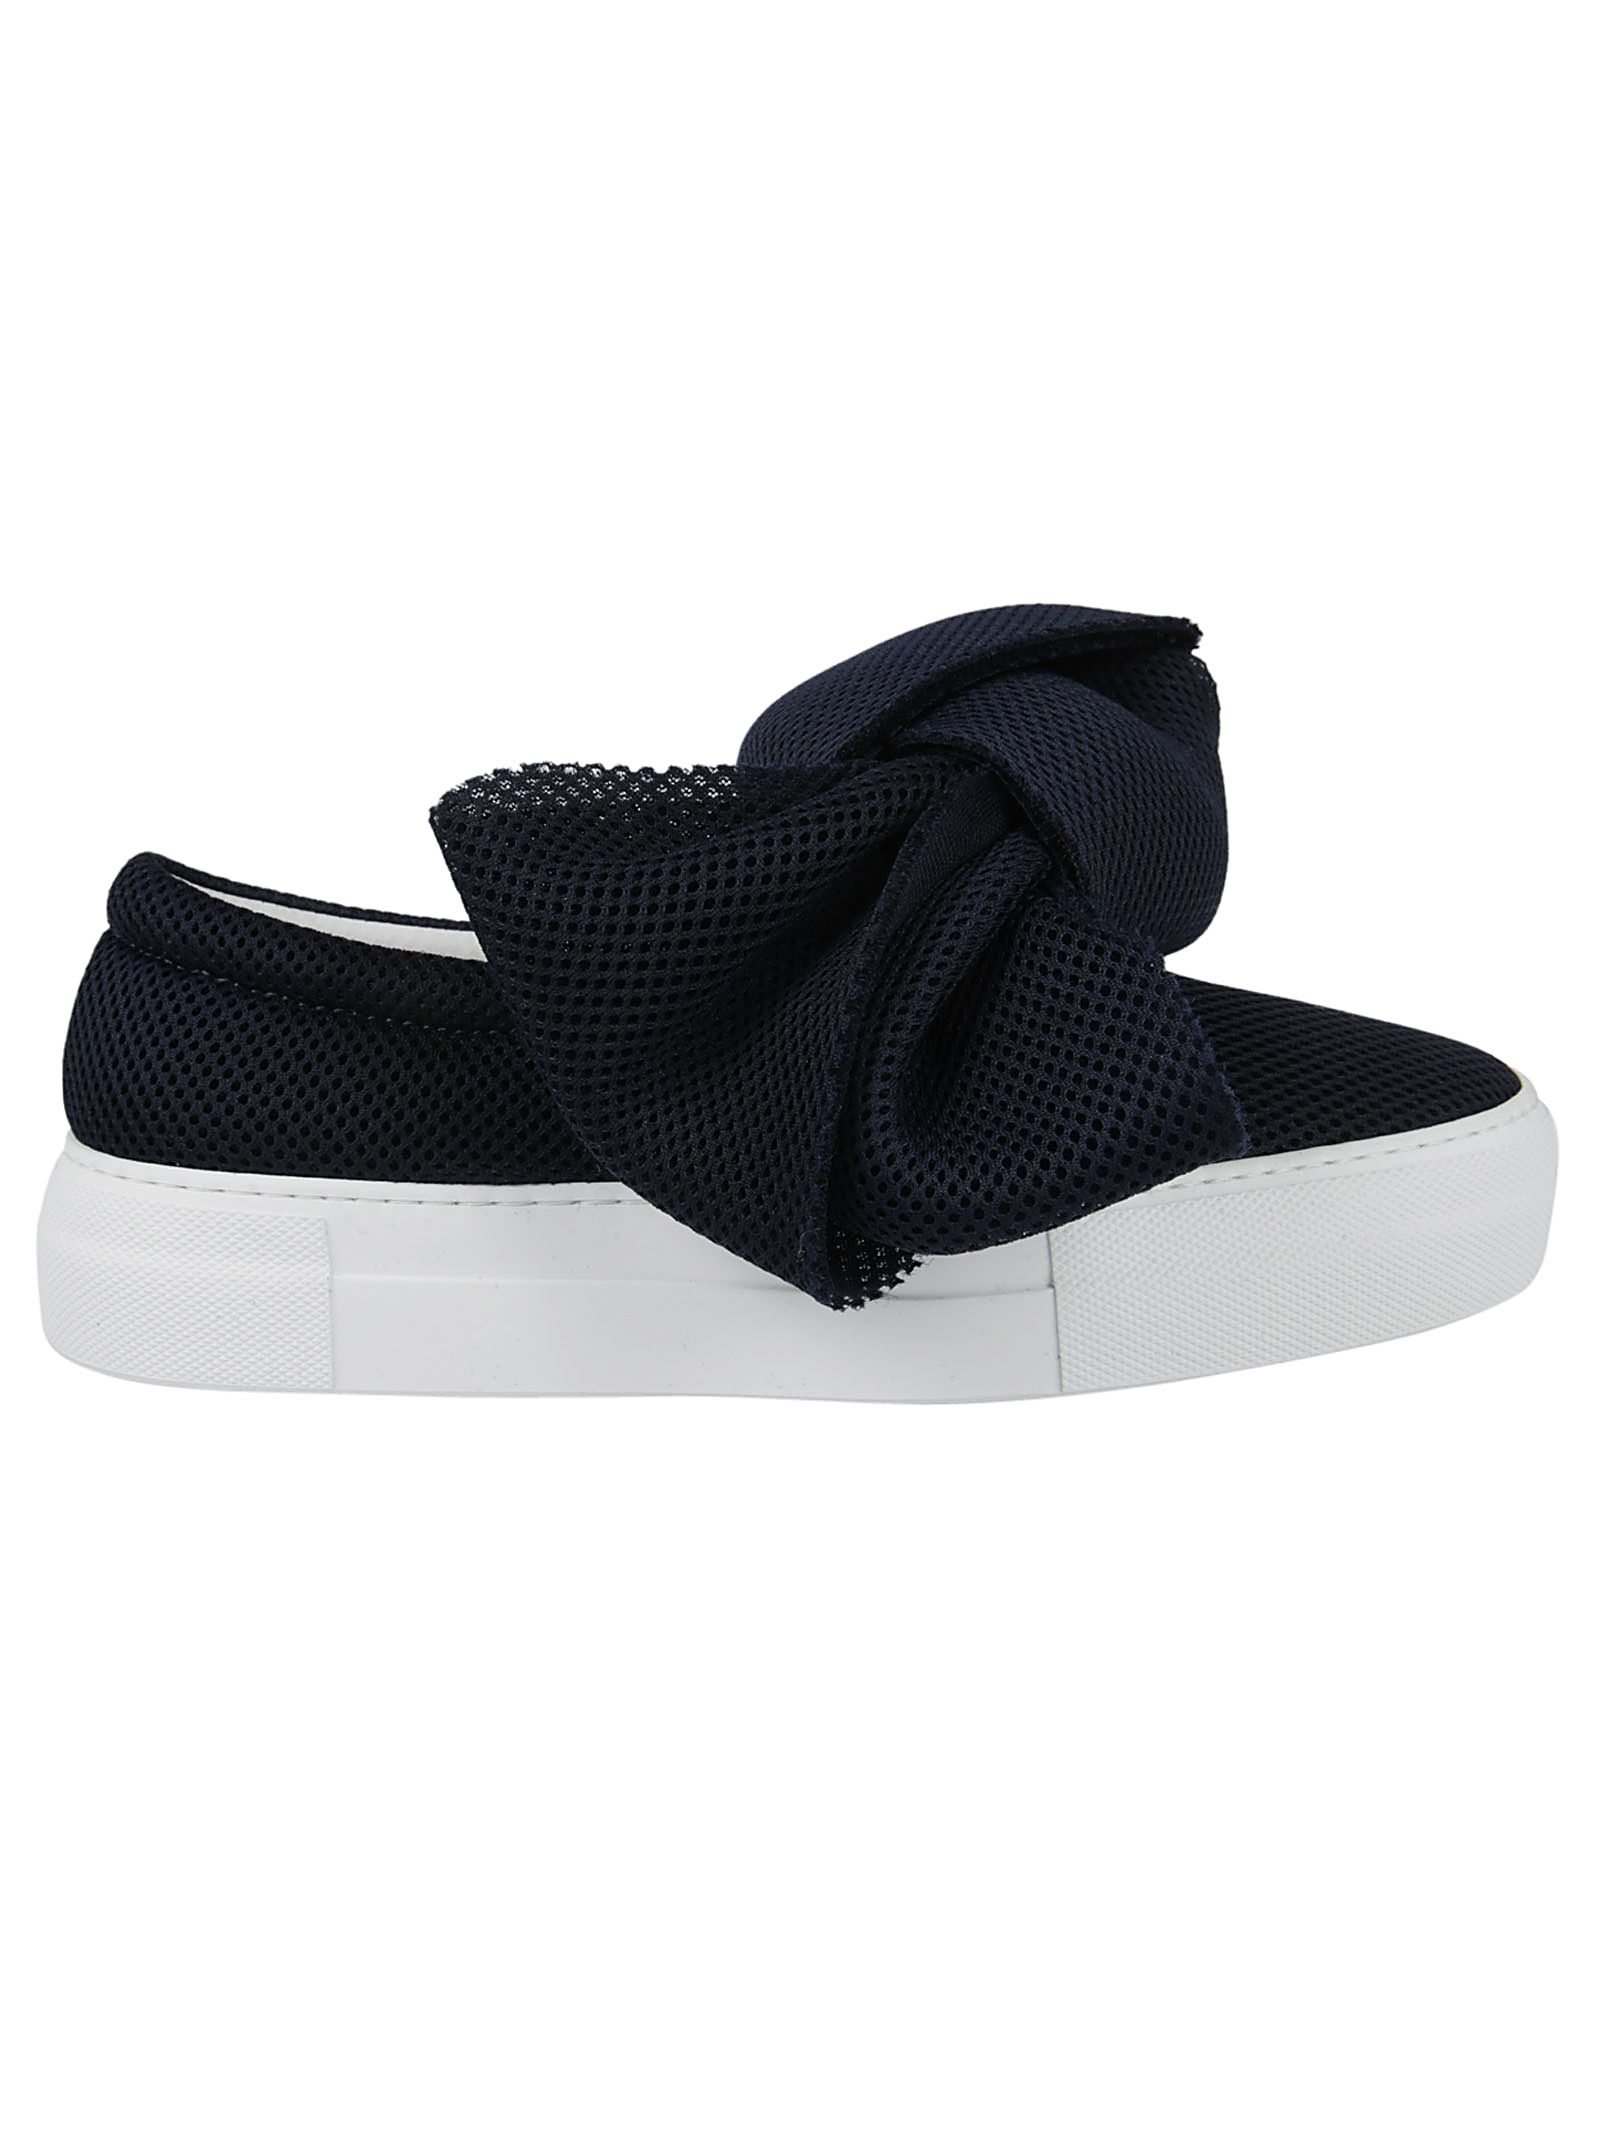 Joshua Sanders Bandana Slip-on Sneakers